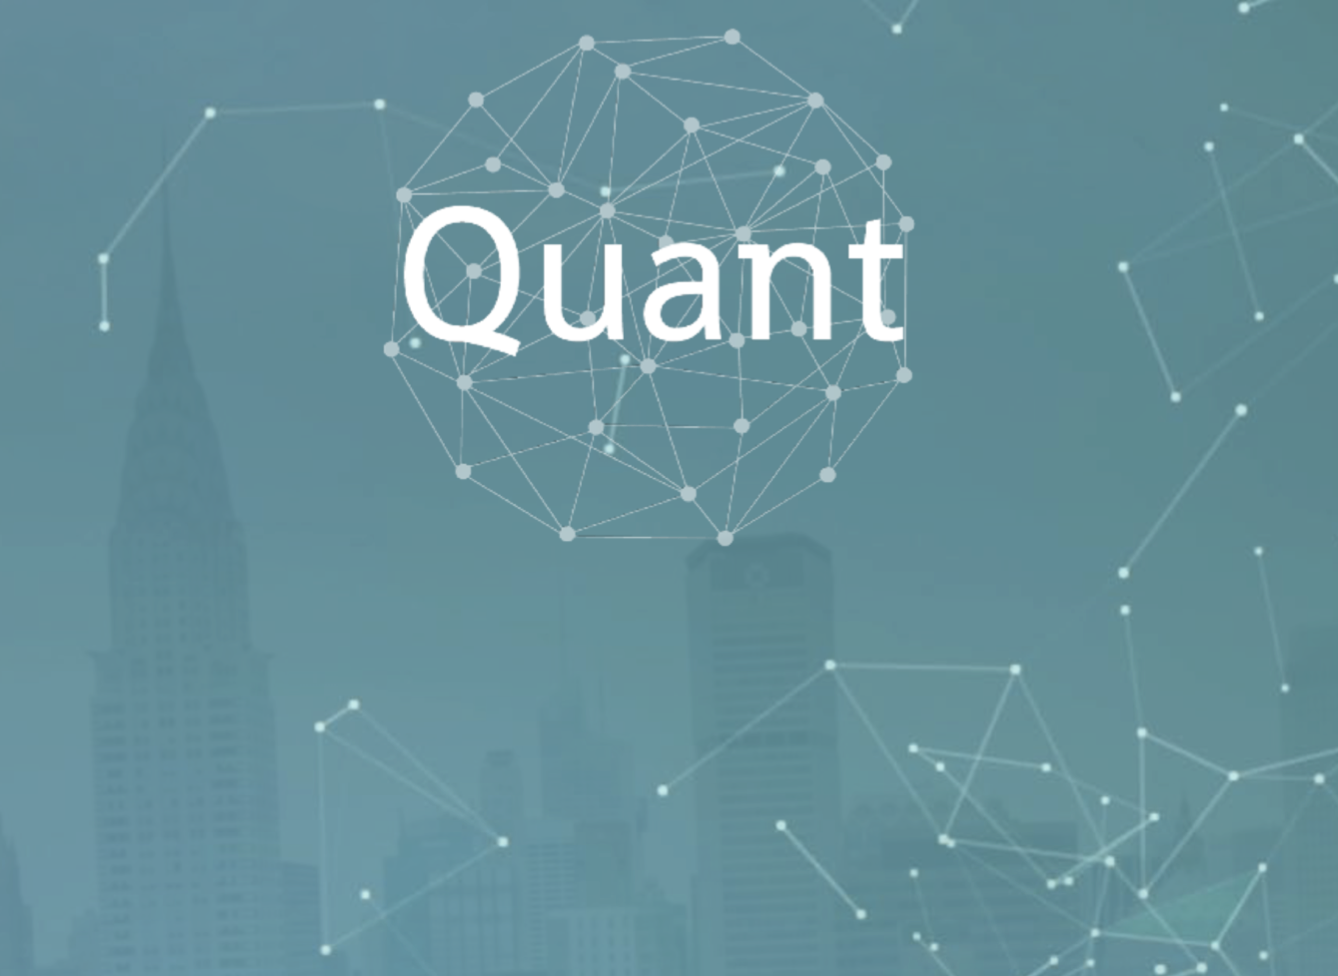 Quant Network | Project Overview | Golos io Блоги